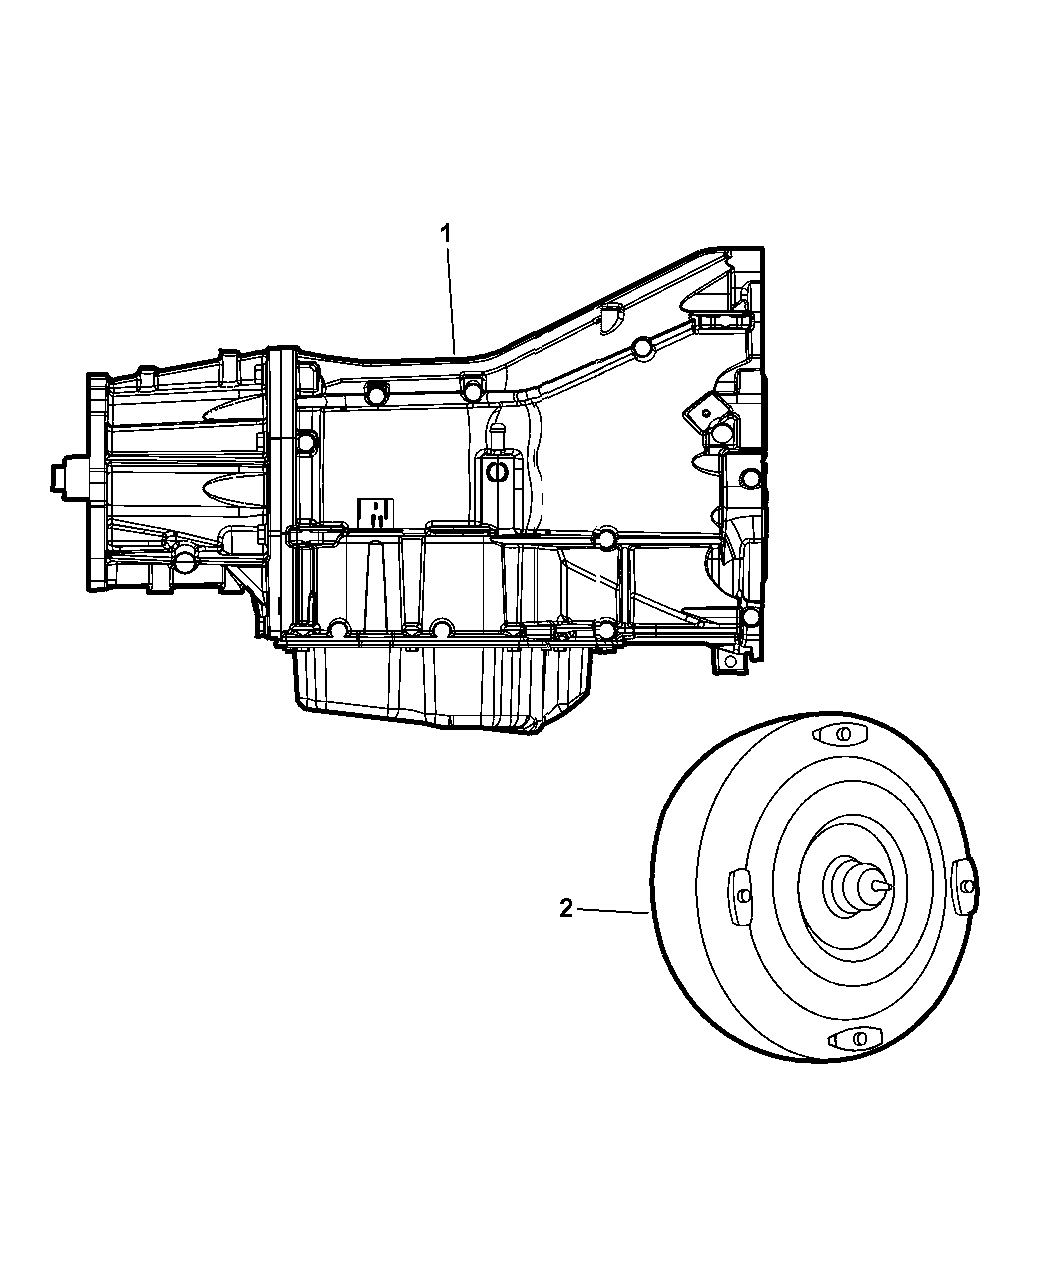 Jeep Wrangler Transmission Assembly Of Automatic